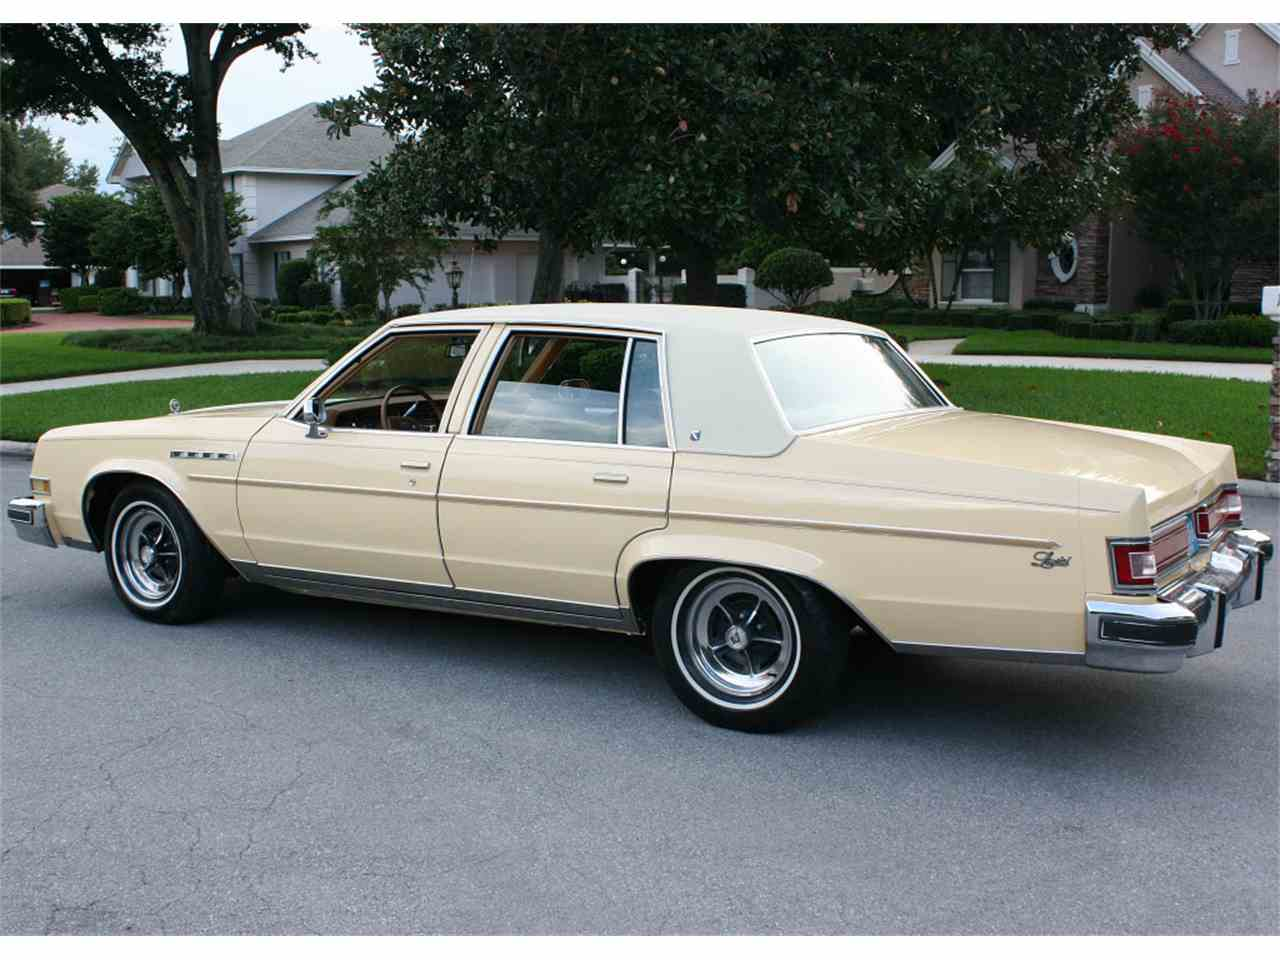 Large Picture of '78 Buick Electra located in Florida - $13,500.00 Offered by MJC Classic Cars - J5J3